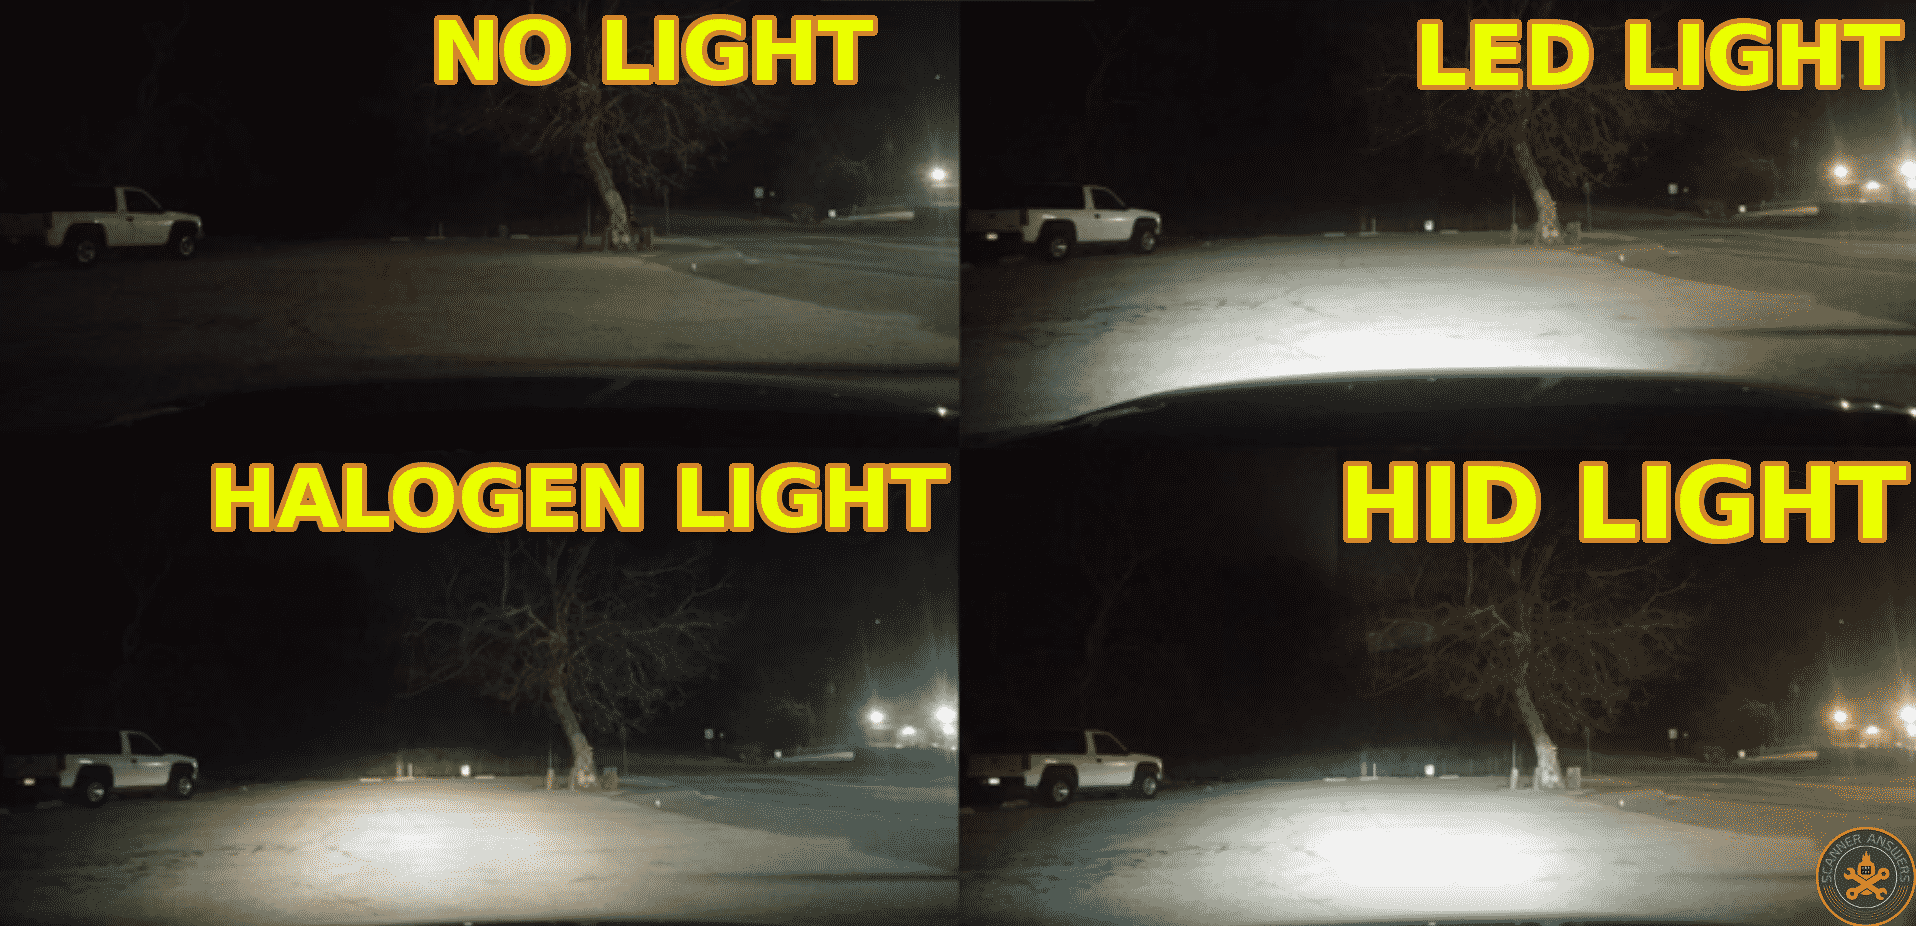 6 of the best hid and led headlight kits reviewed 2017 edition 6 of the best hid headlight kits reviewed 2017 edition nvjuhfo Choice Image